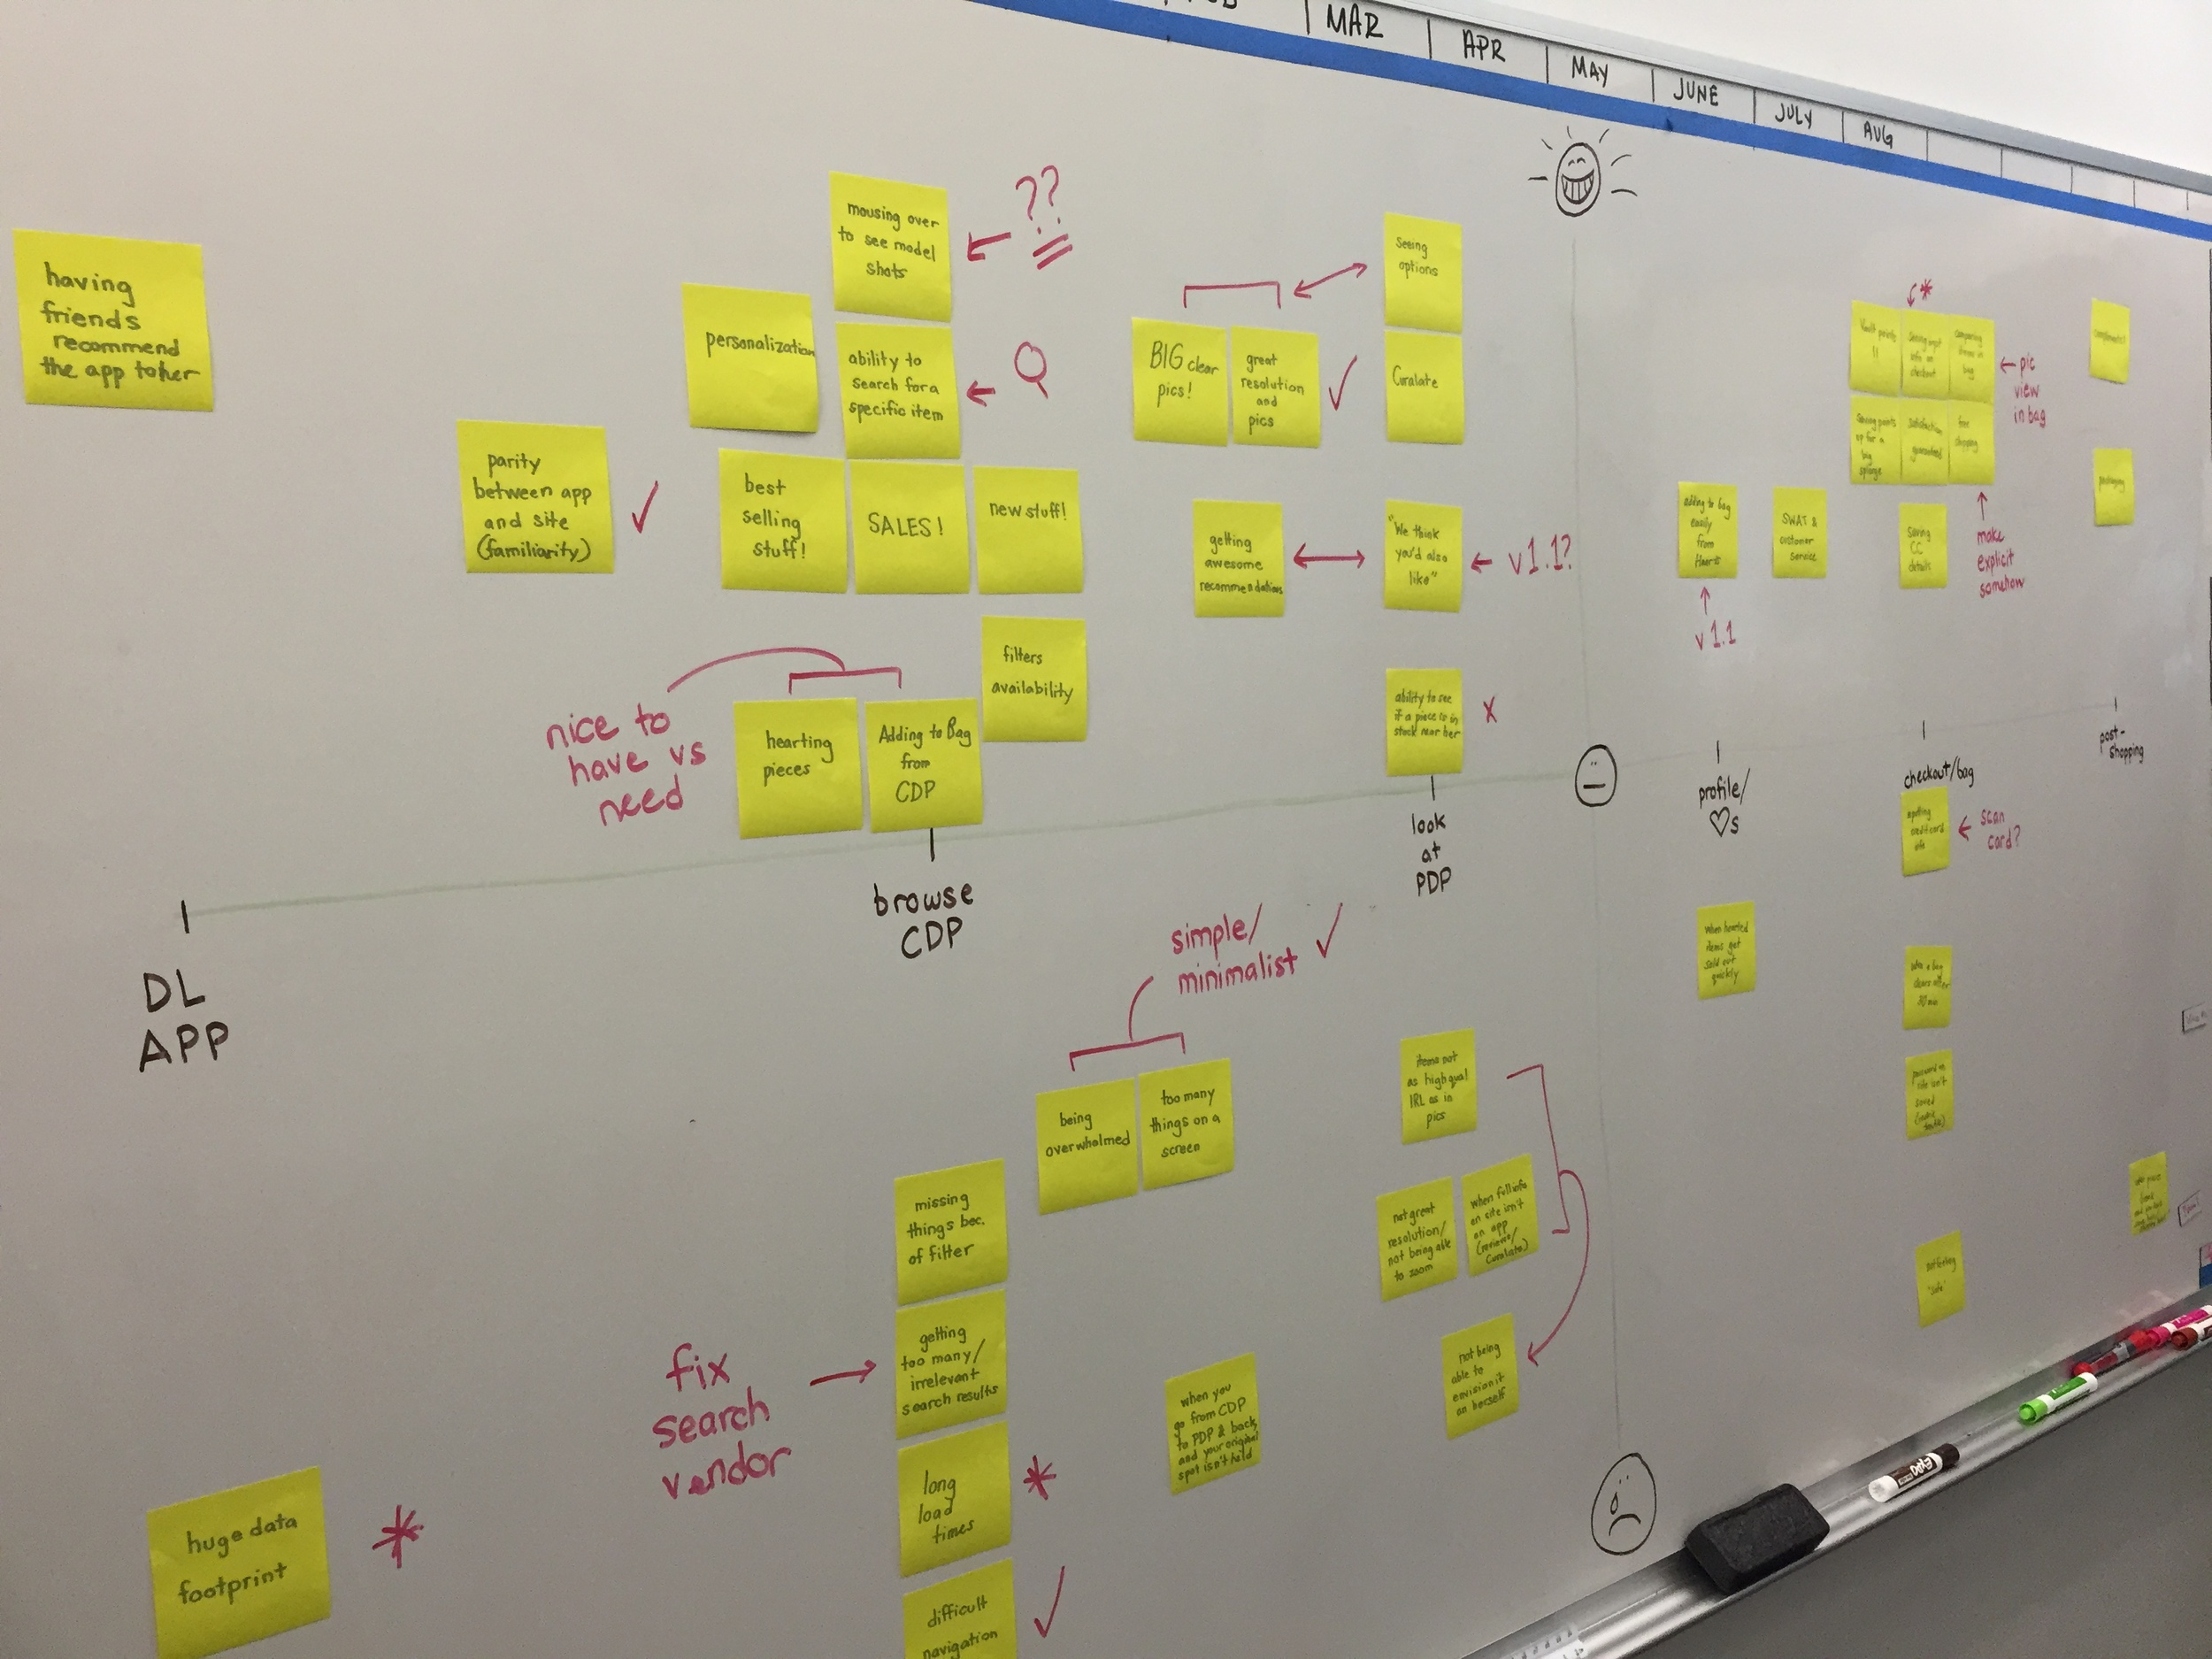 After meeting with users multiple times, an affinity map helps the team see the full picture, and assess patterns in user behavior/mental models.